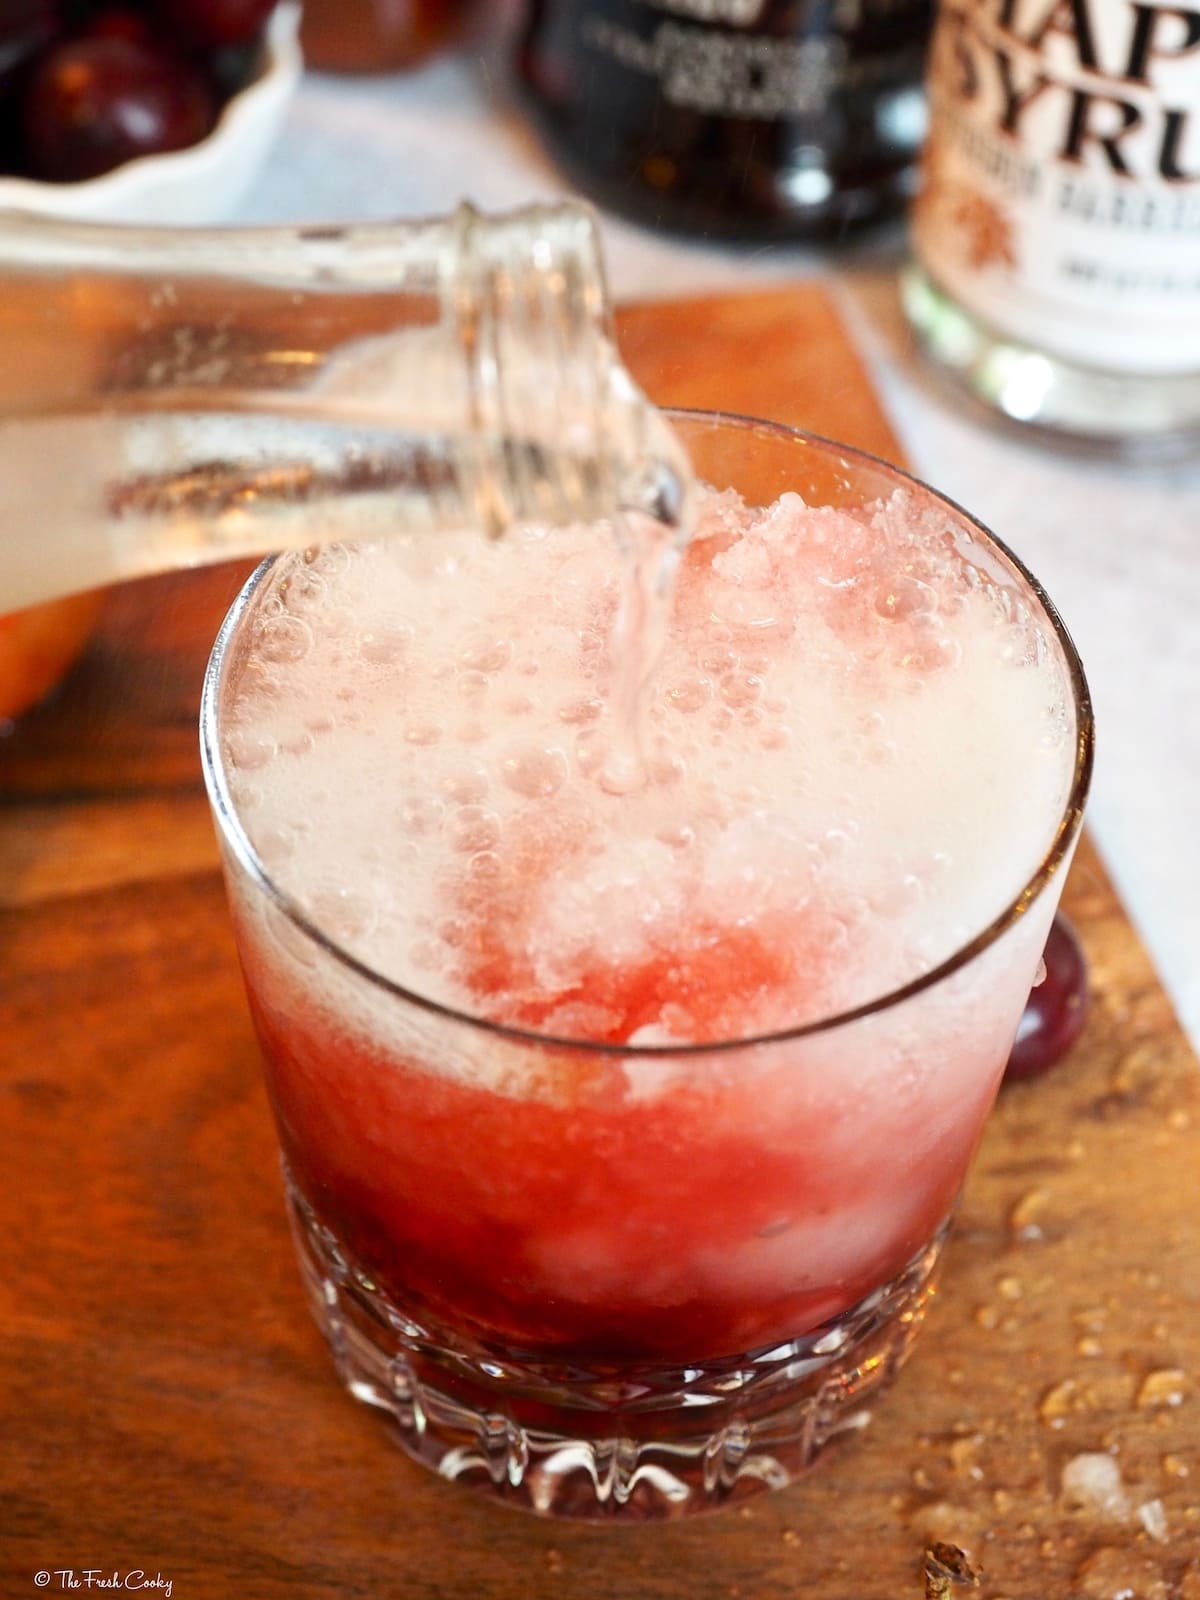 Pouring in a splash of club soda to the Cherry Bomb cocktail.